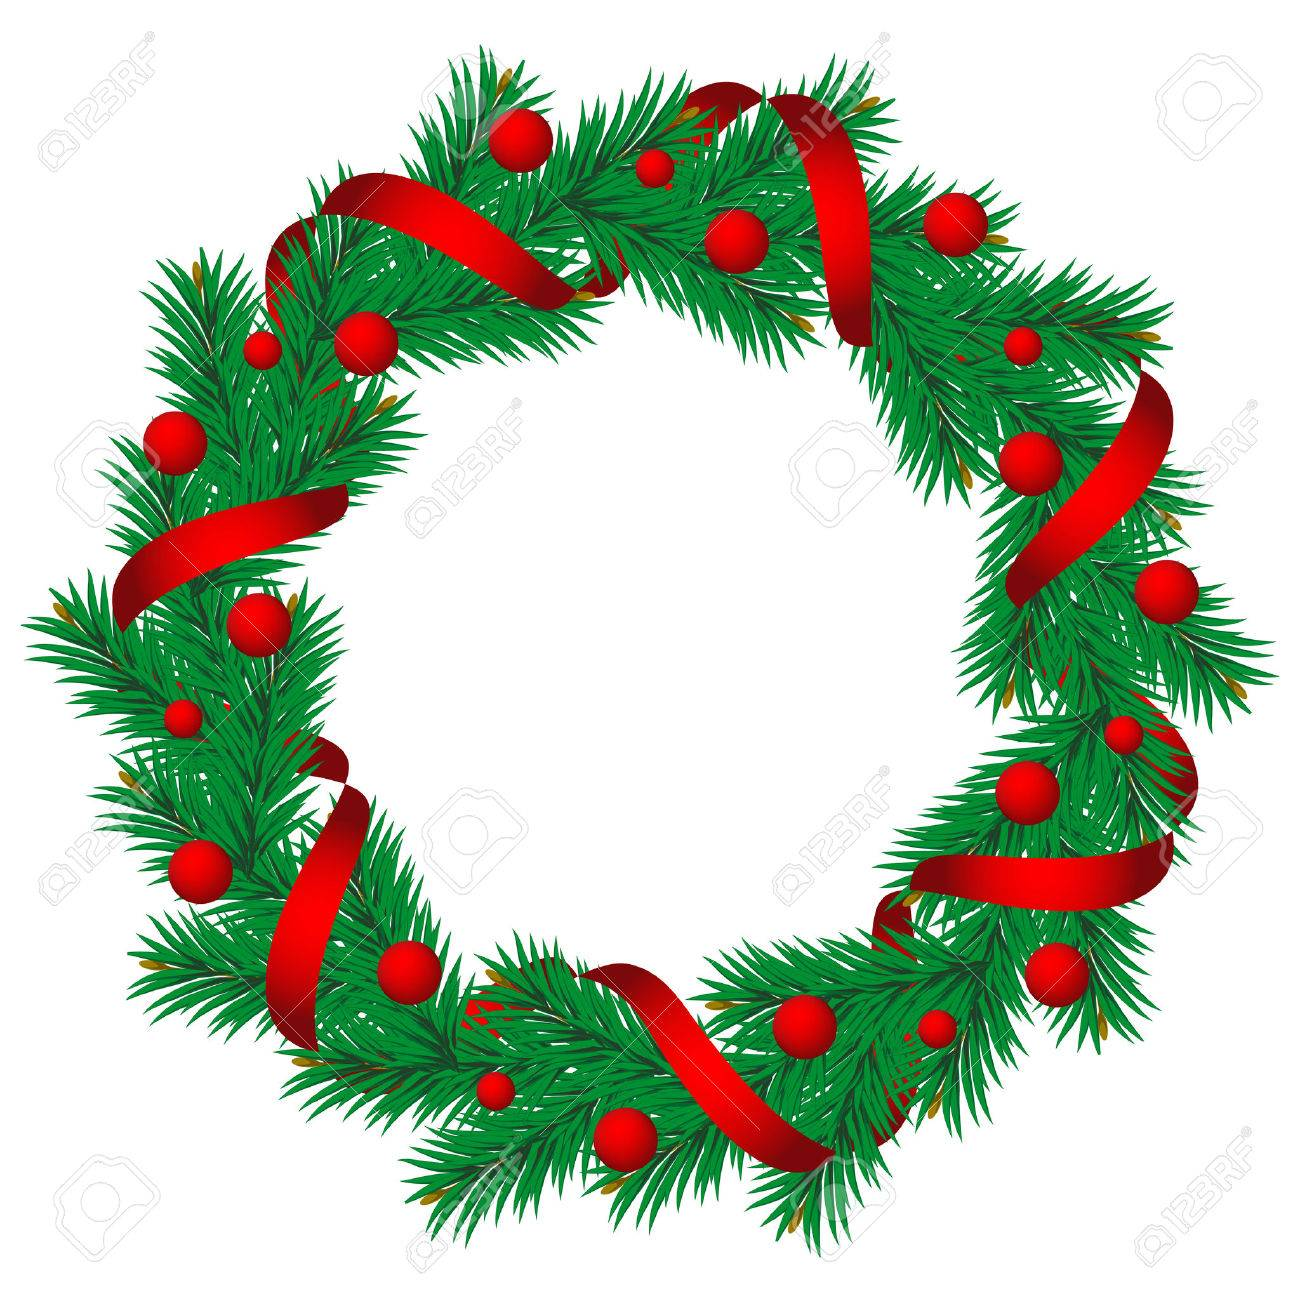 Christmas Pine Garland.Christmas Pine Garland Decorated With Red And Golden Ribbons